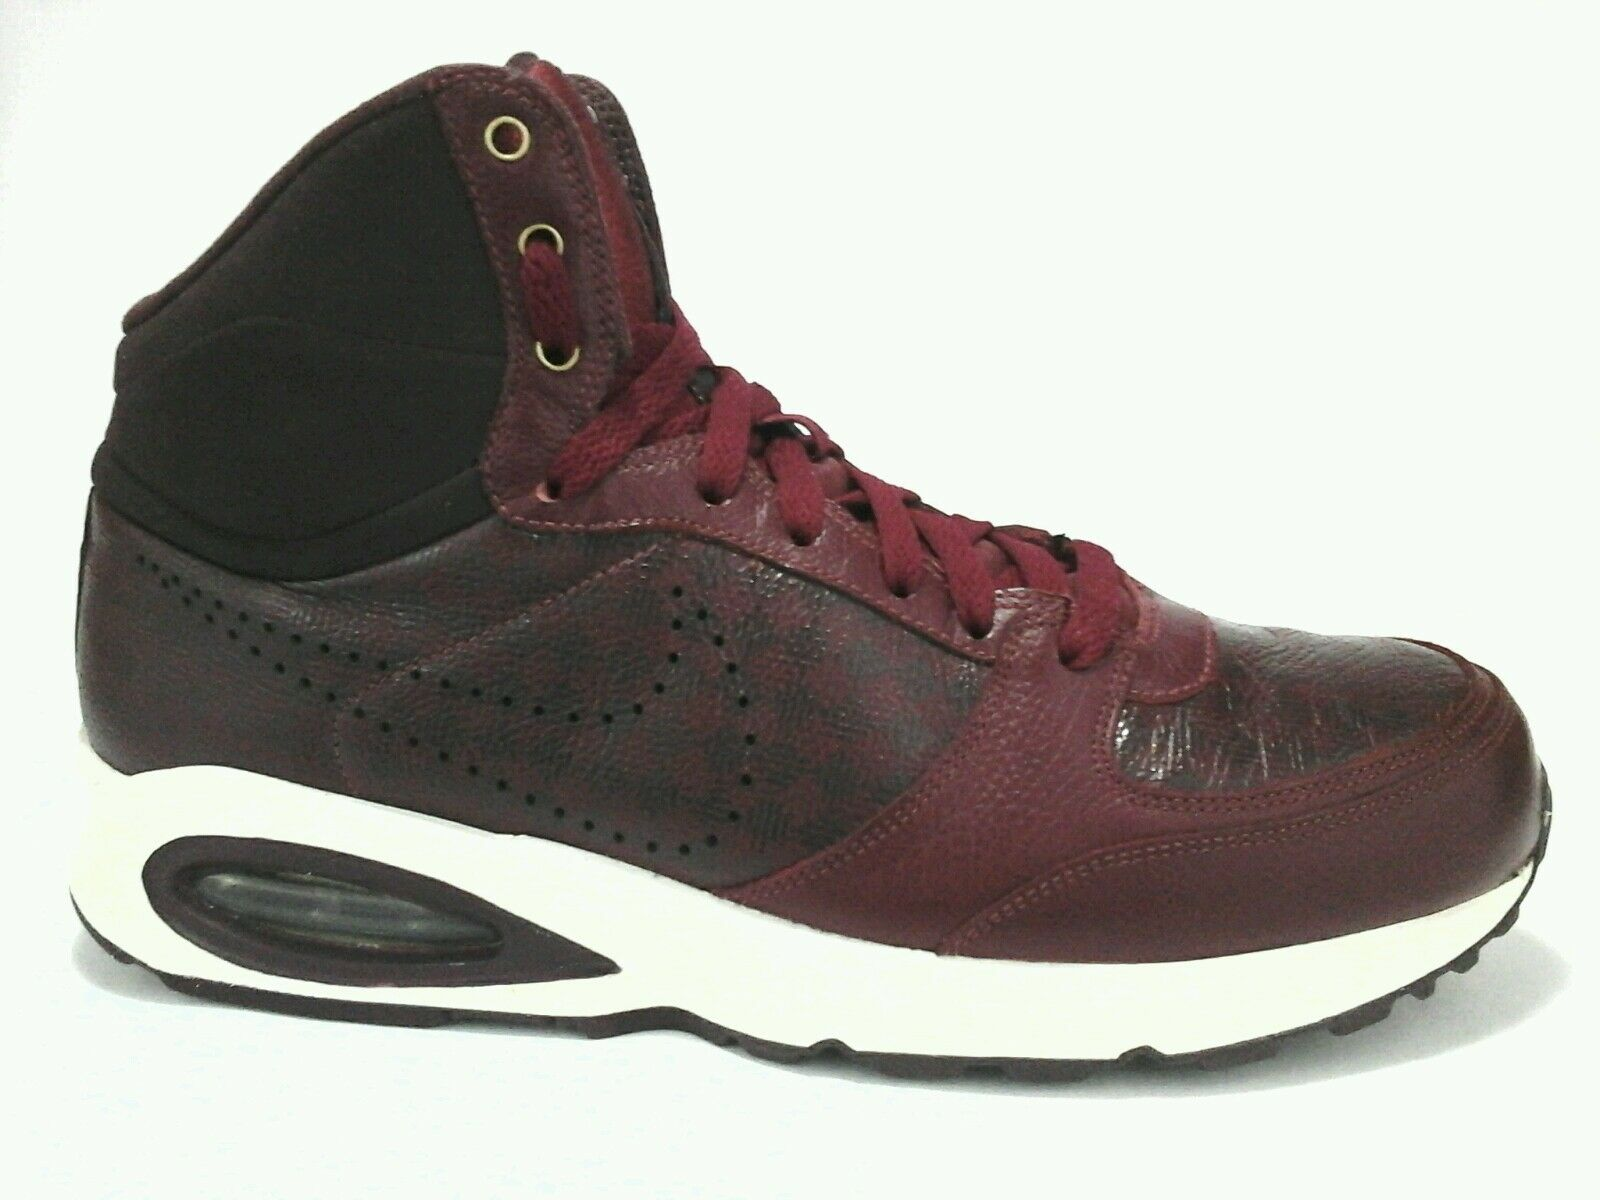 Nike AIR MAX INTERNATIONAL Burgundy Red shoes Men's US 9 RARE